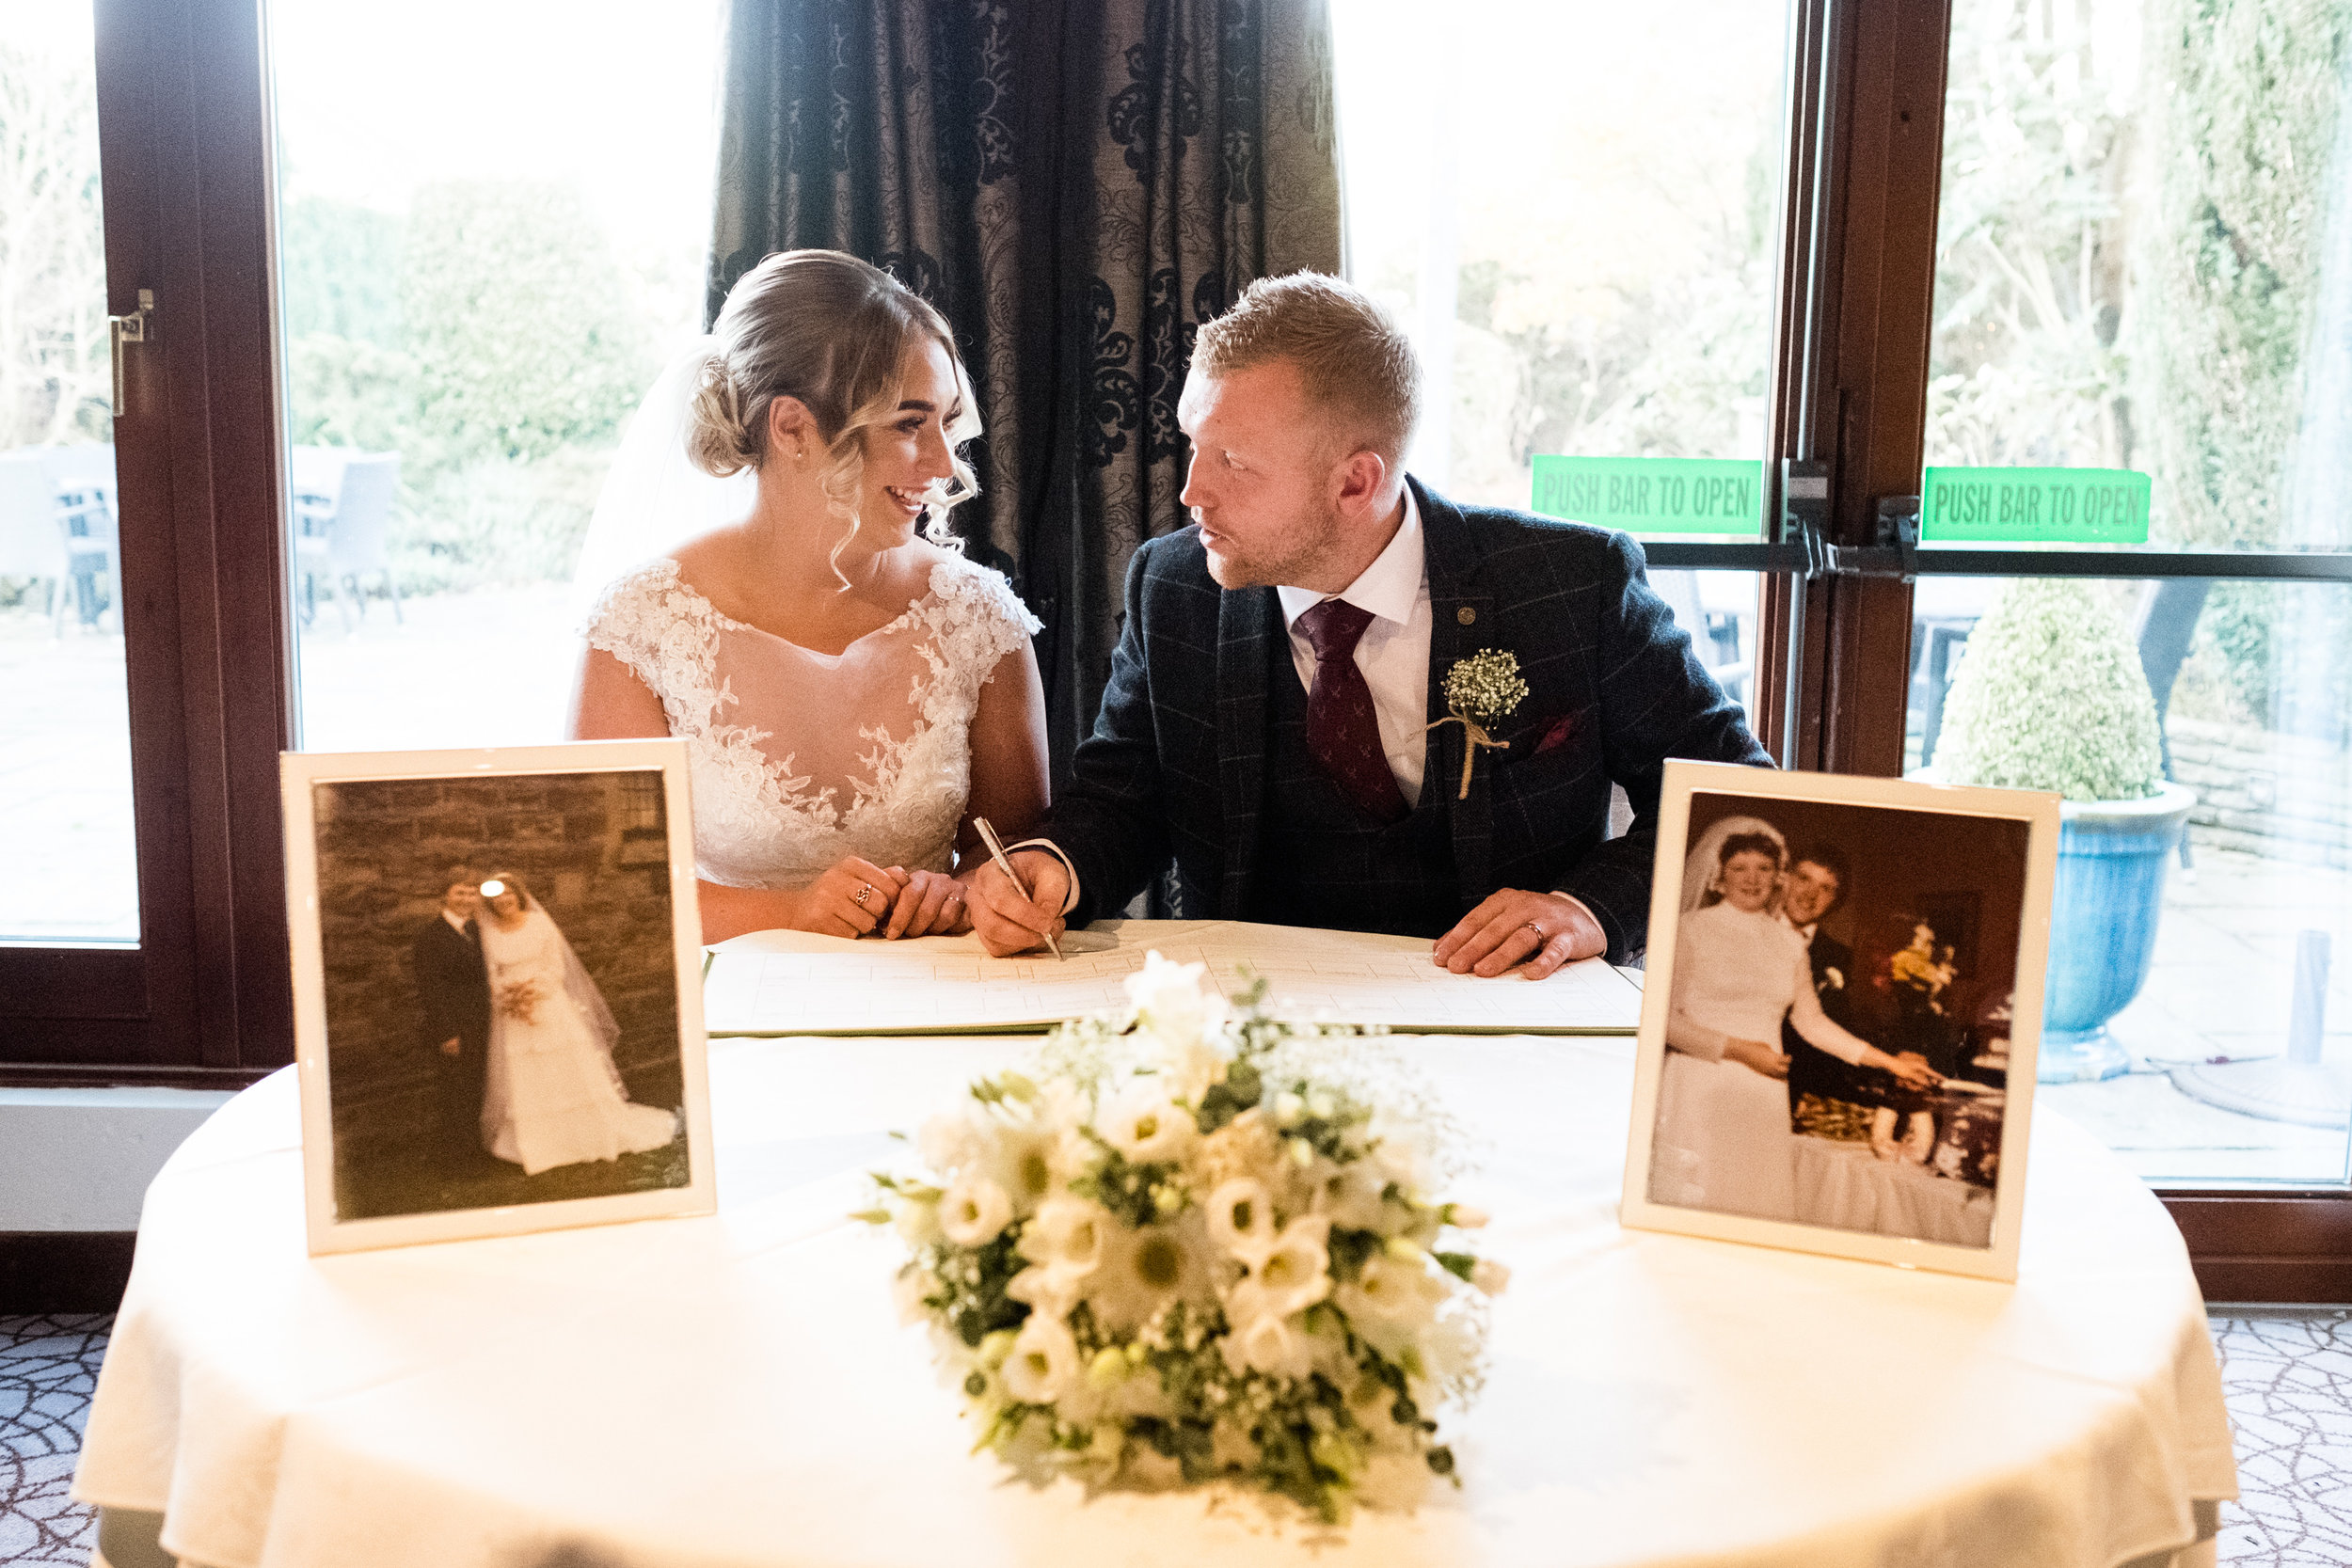 Autumn Wedding Photography at The Three Horseshoes, Blackshaw Moor, Staffordshire Moorlands - Jenny Harper-28.jpg